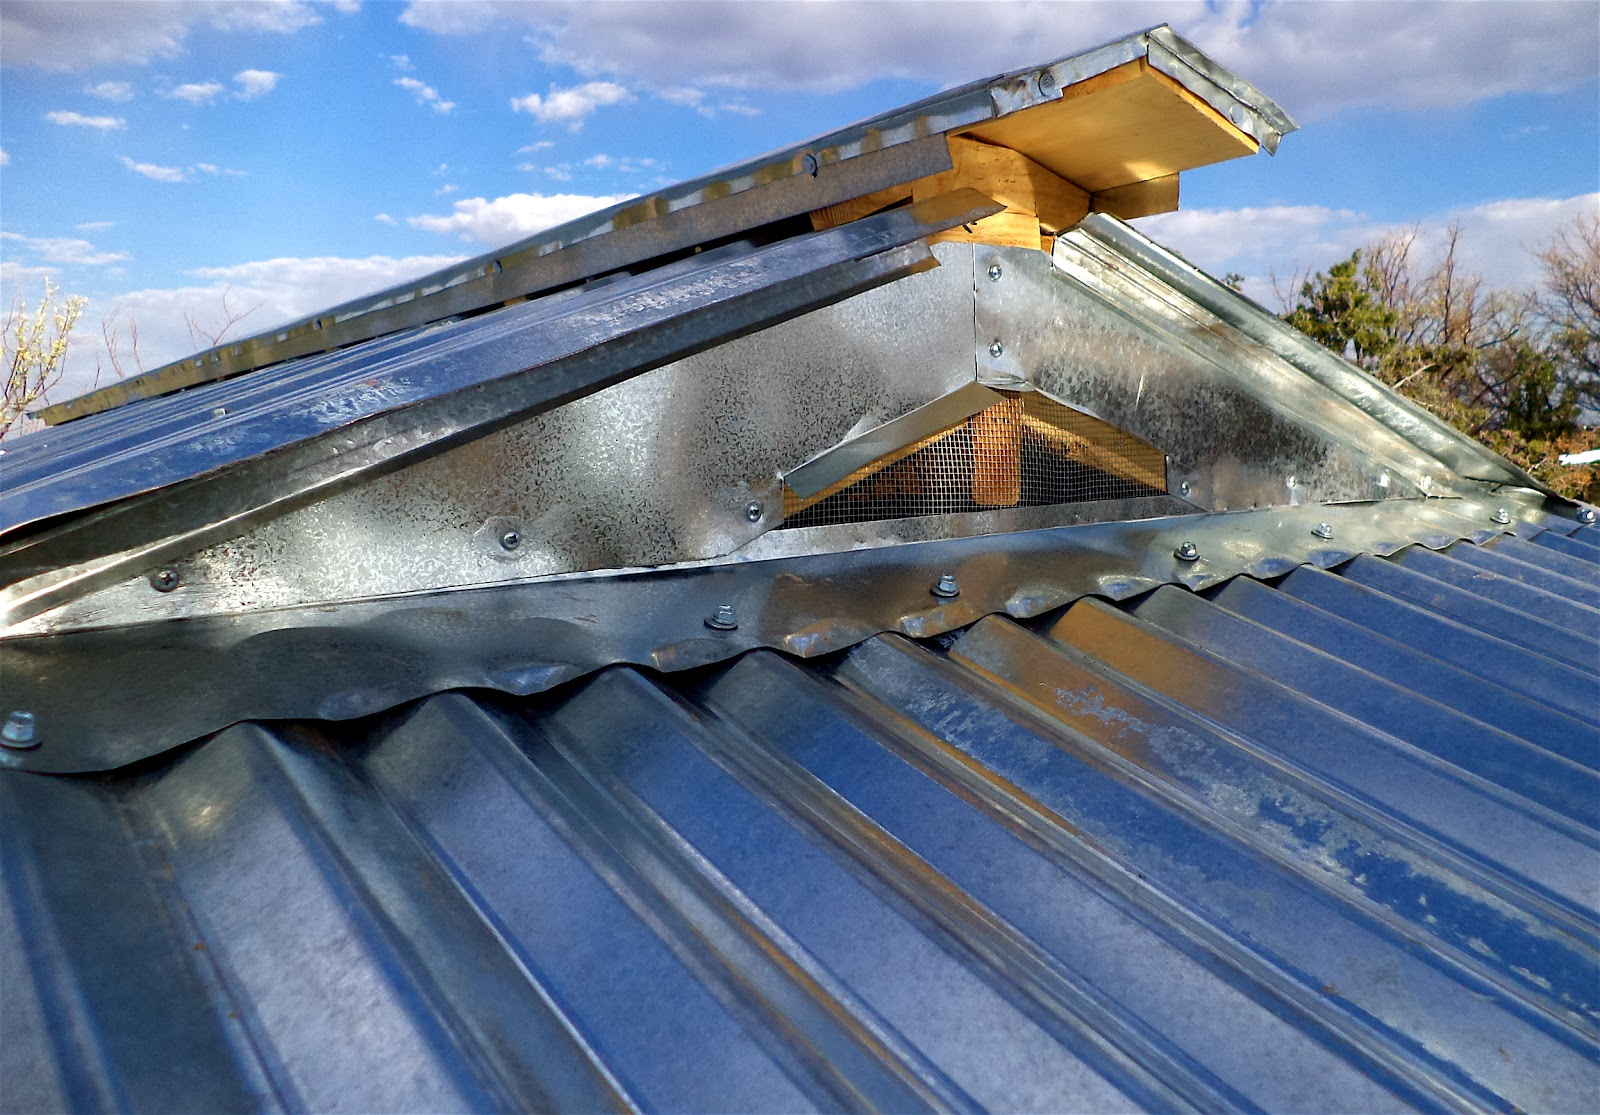 Corrugated Ribbed Metal Roofing Cost And Pros Cons 2020 Home Remodeling Costs Guide